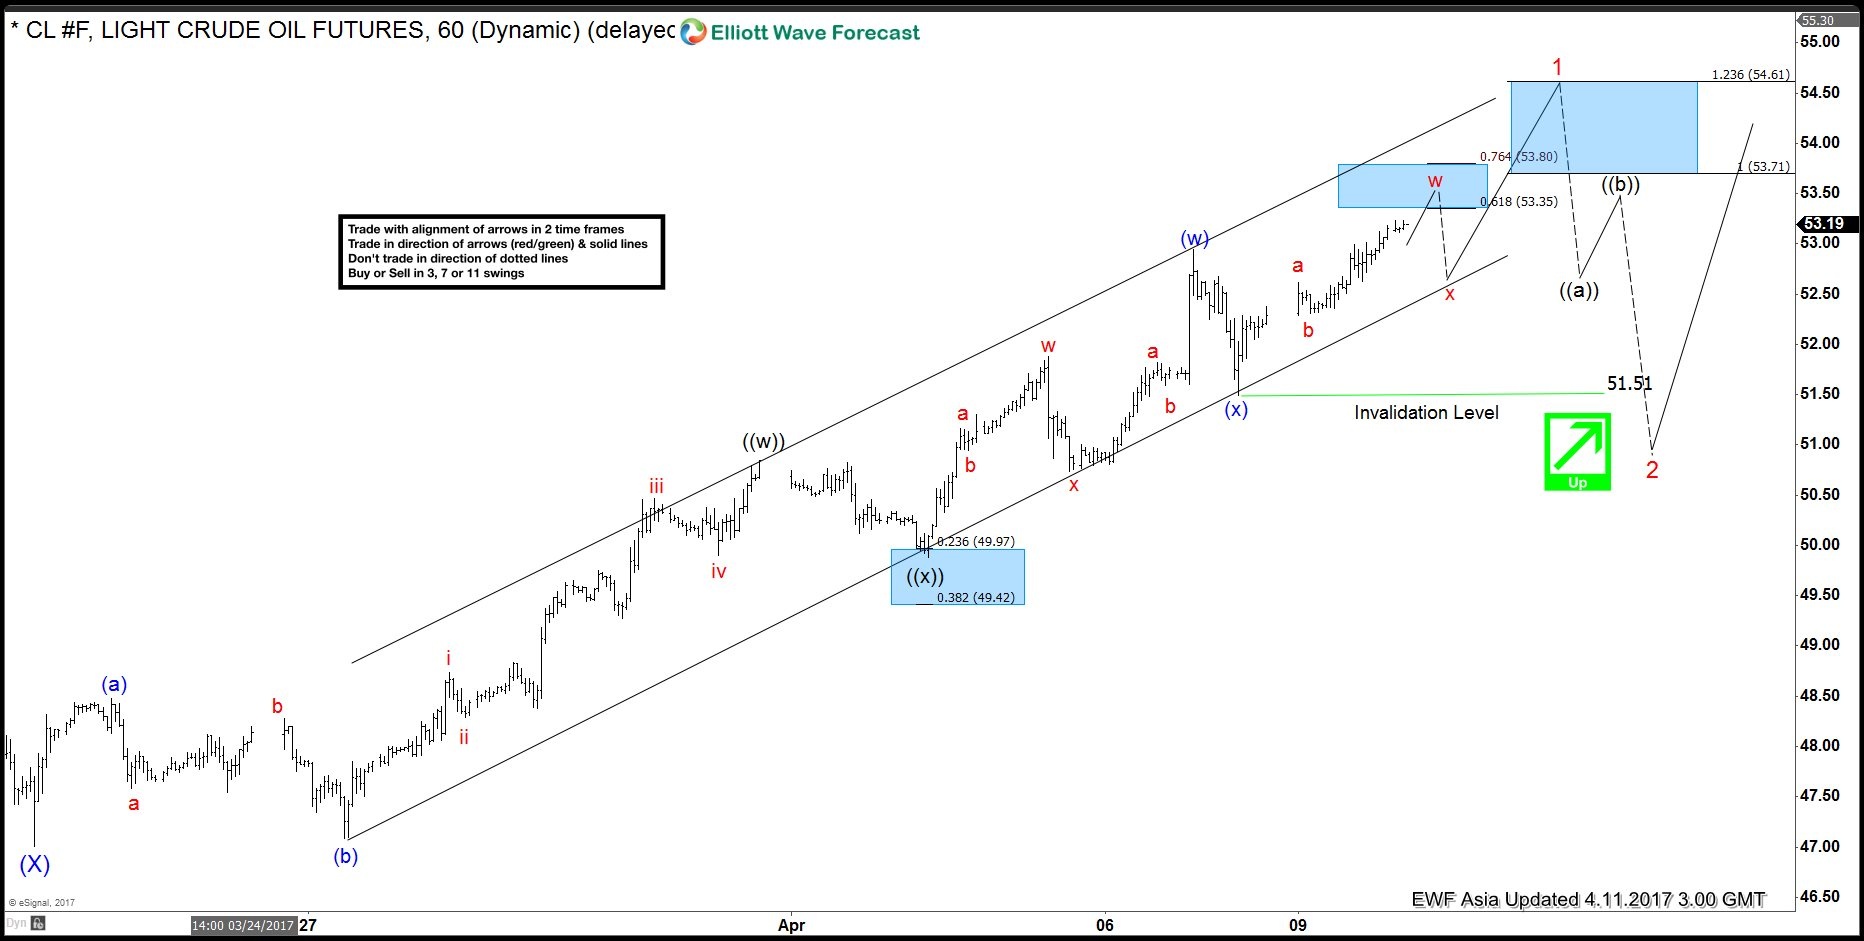 CL_F Elliott Wave View: Ending a cycle – Elliott Wave Forecast